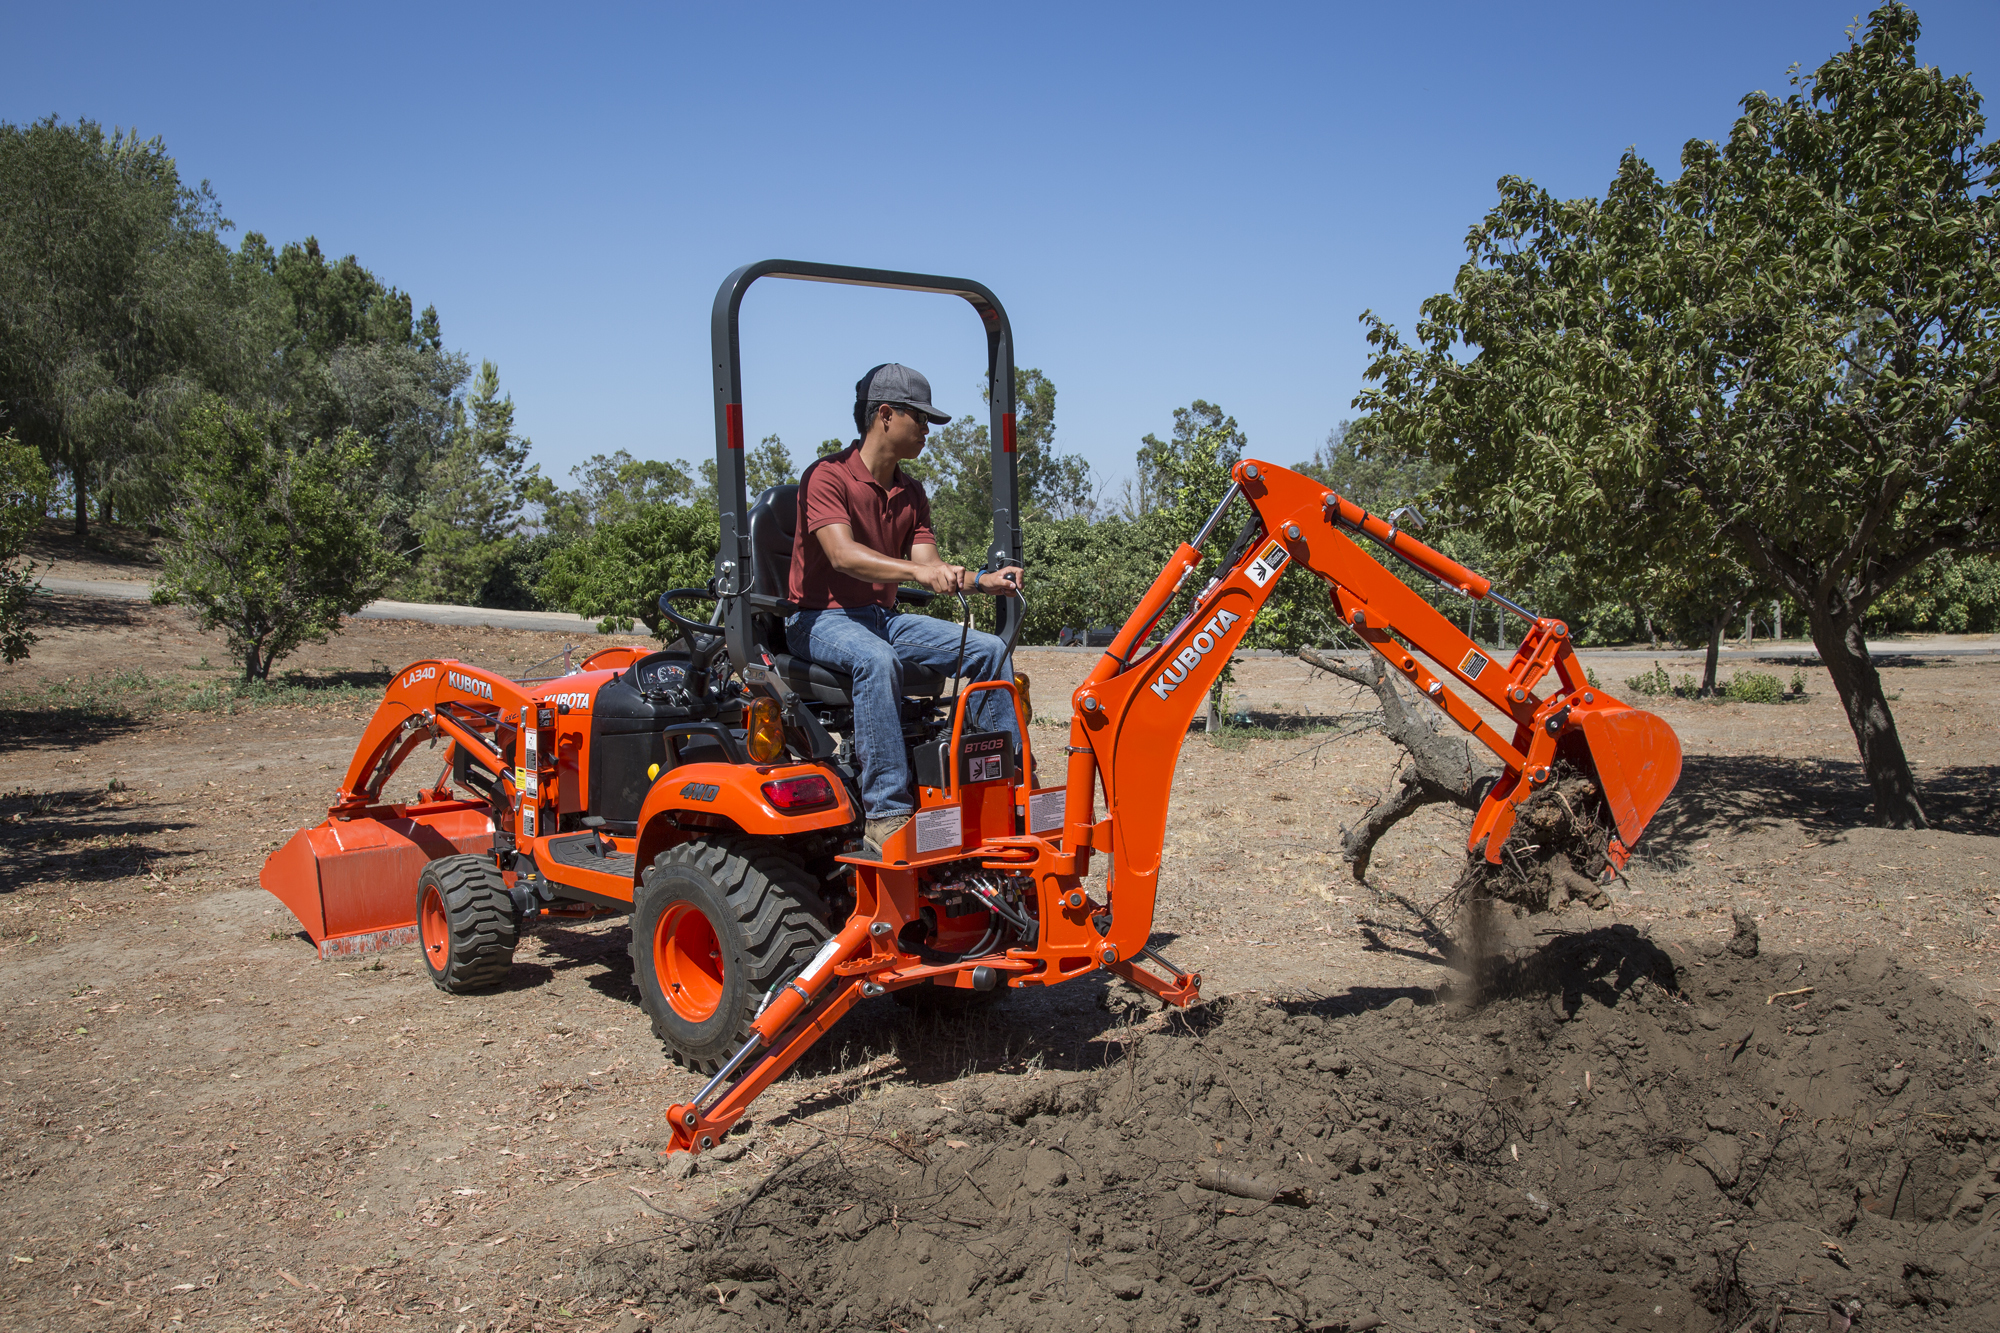 Kubota stv40 hst compact tractor, tractors, agriculture